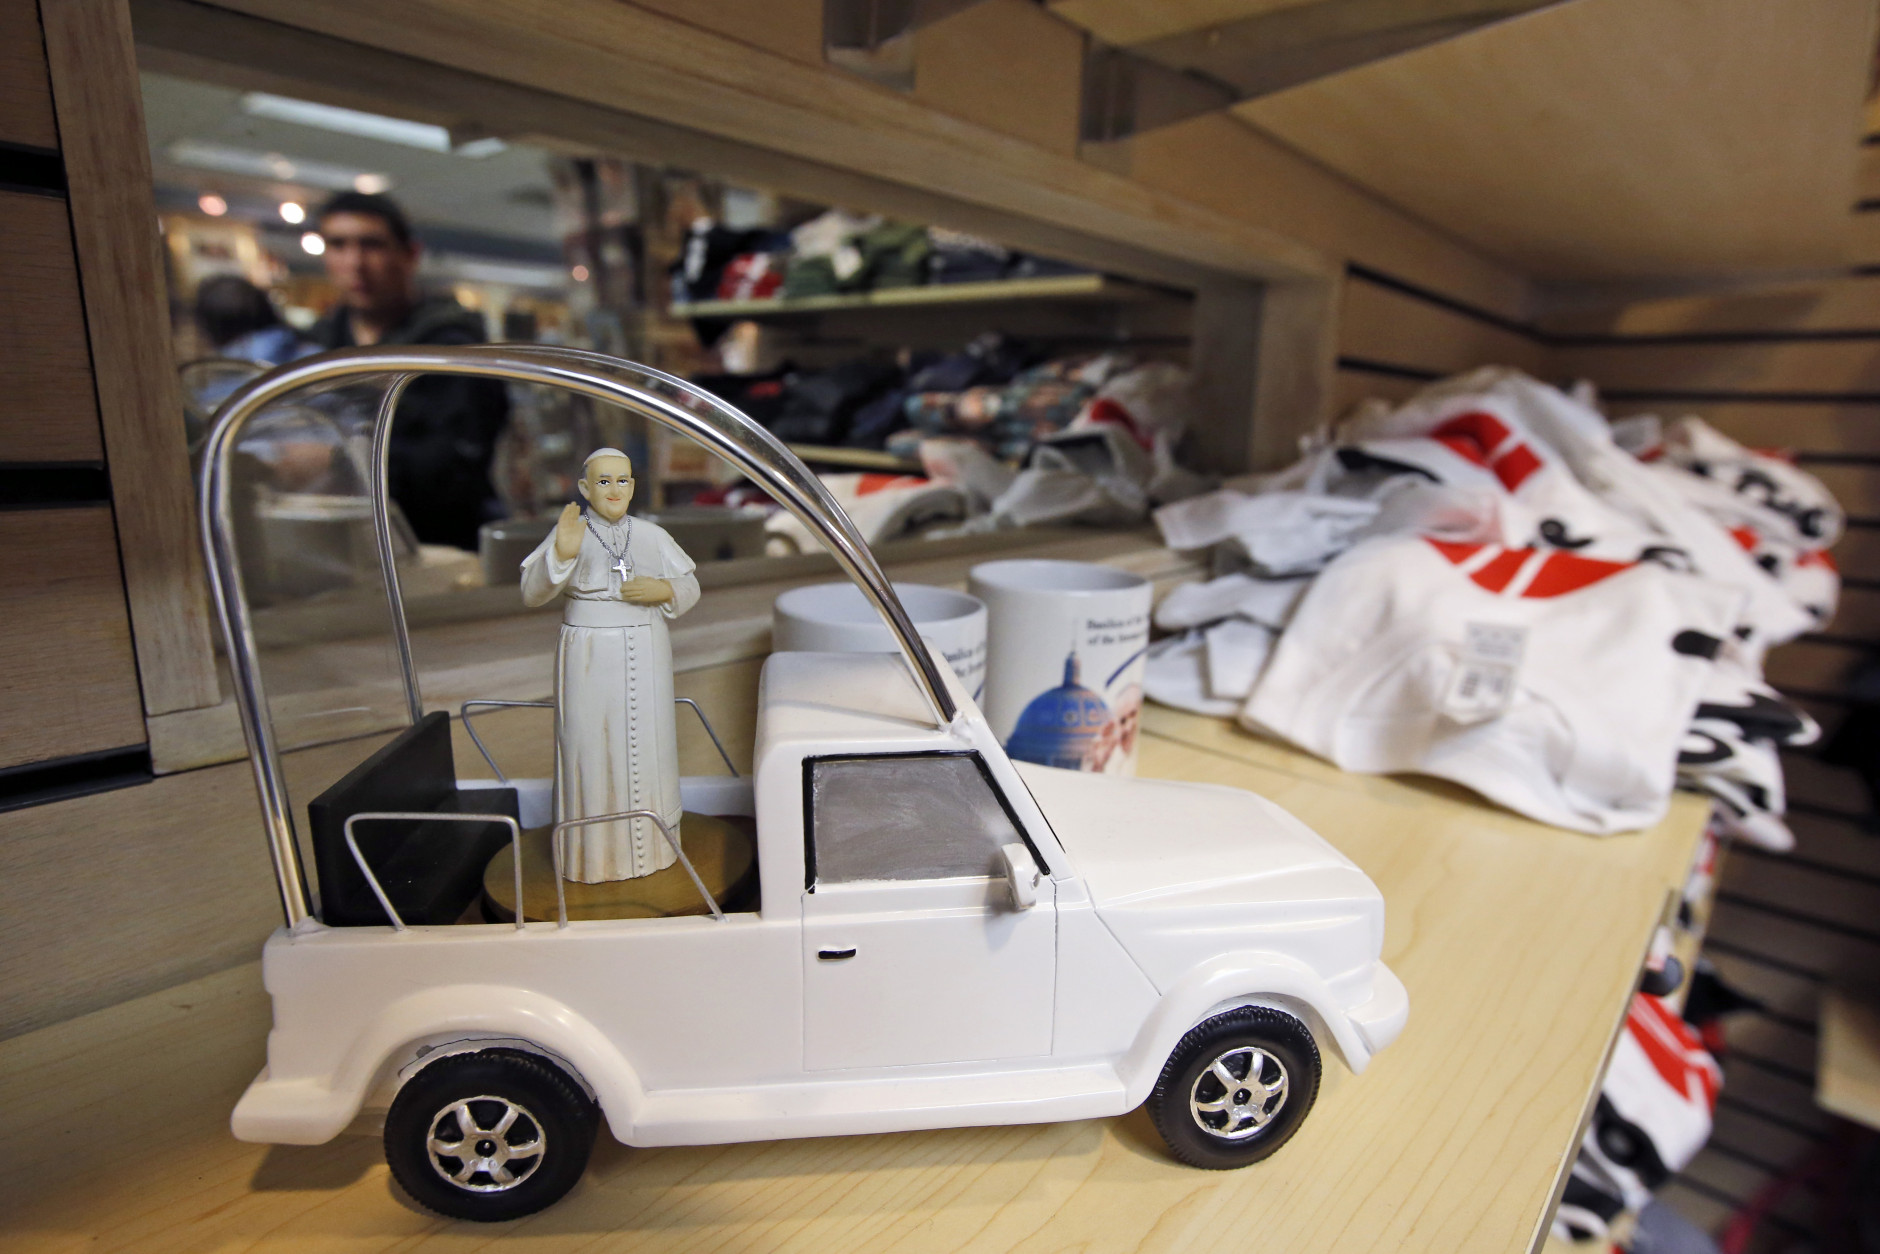 A musical popemobile with a likeness of Pope Francis in it, is for sale at The Basilica of the National Shrine of the Immaculate Conception gift shop in Washington, Tuesday, Sept. 22, 2015, in preparation for the upcoming visit by Pope Francis. (AP Photo/Alex Brandon)